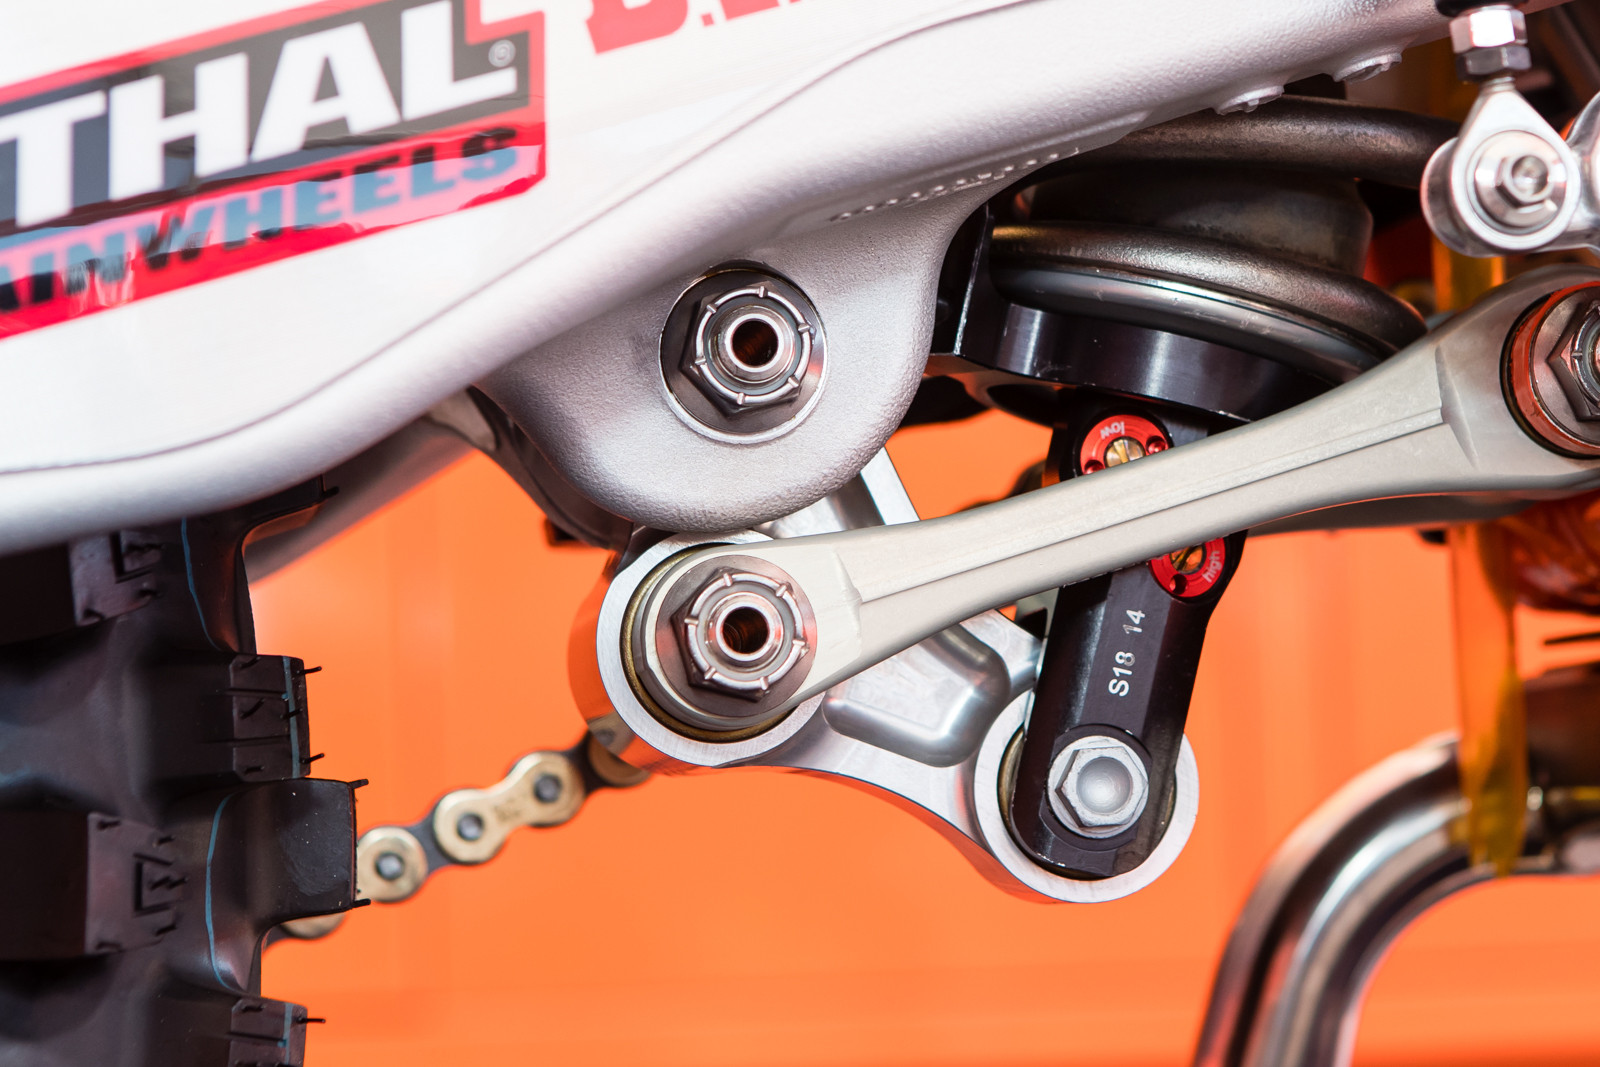 The new shock also has a new feature, with high and low-speed rebound adjusters.